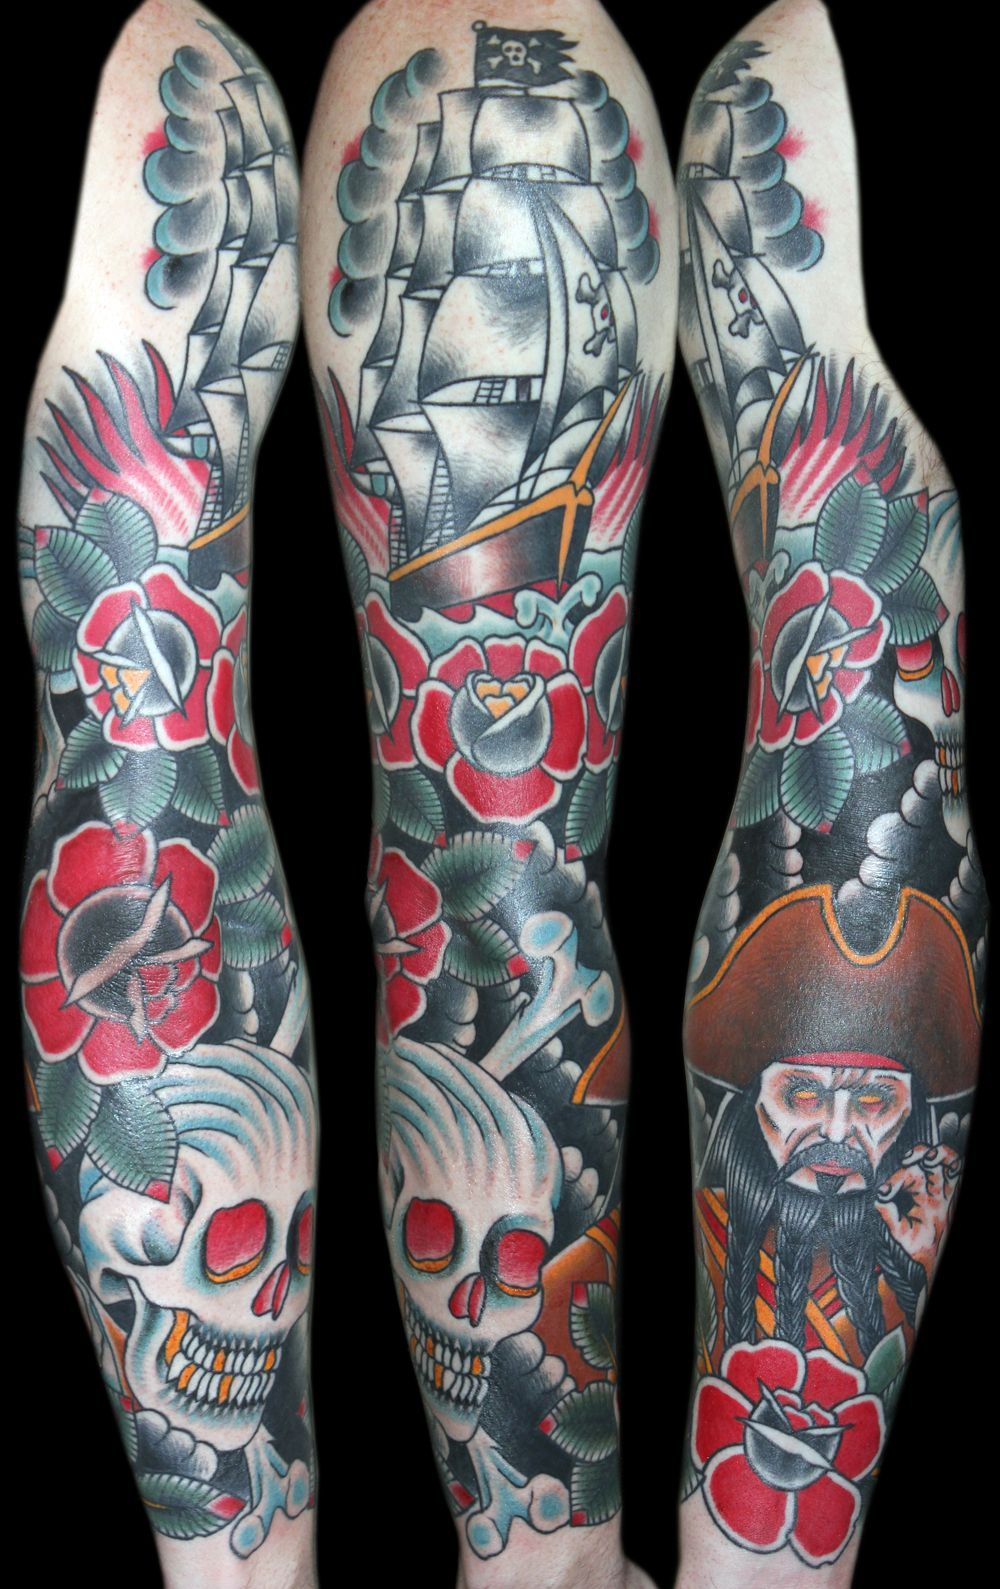 Best Traditional Tattoos Designs | tattoos | Sleeve tattoos, Tattoo ...